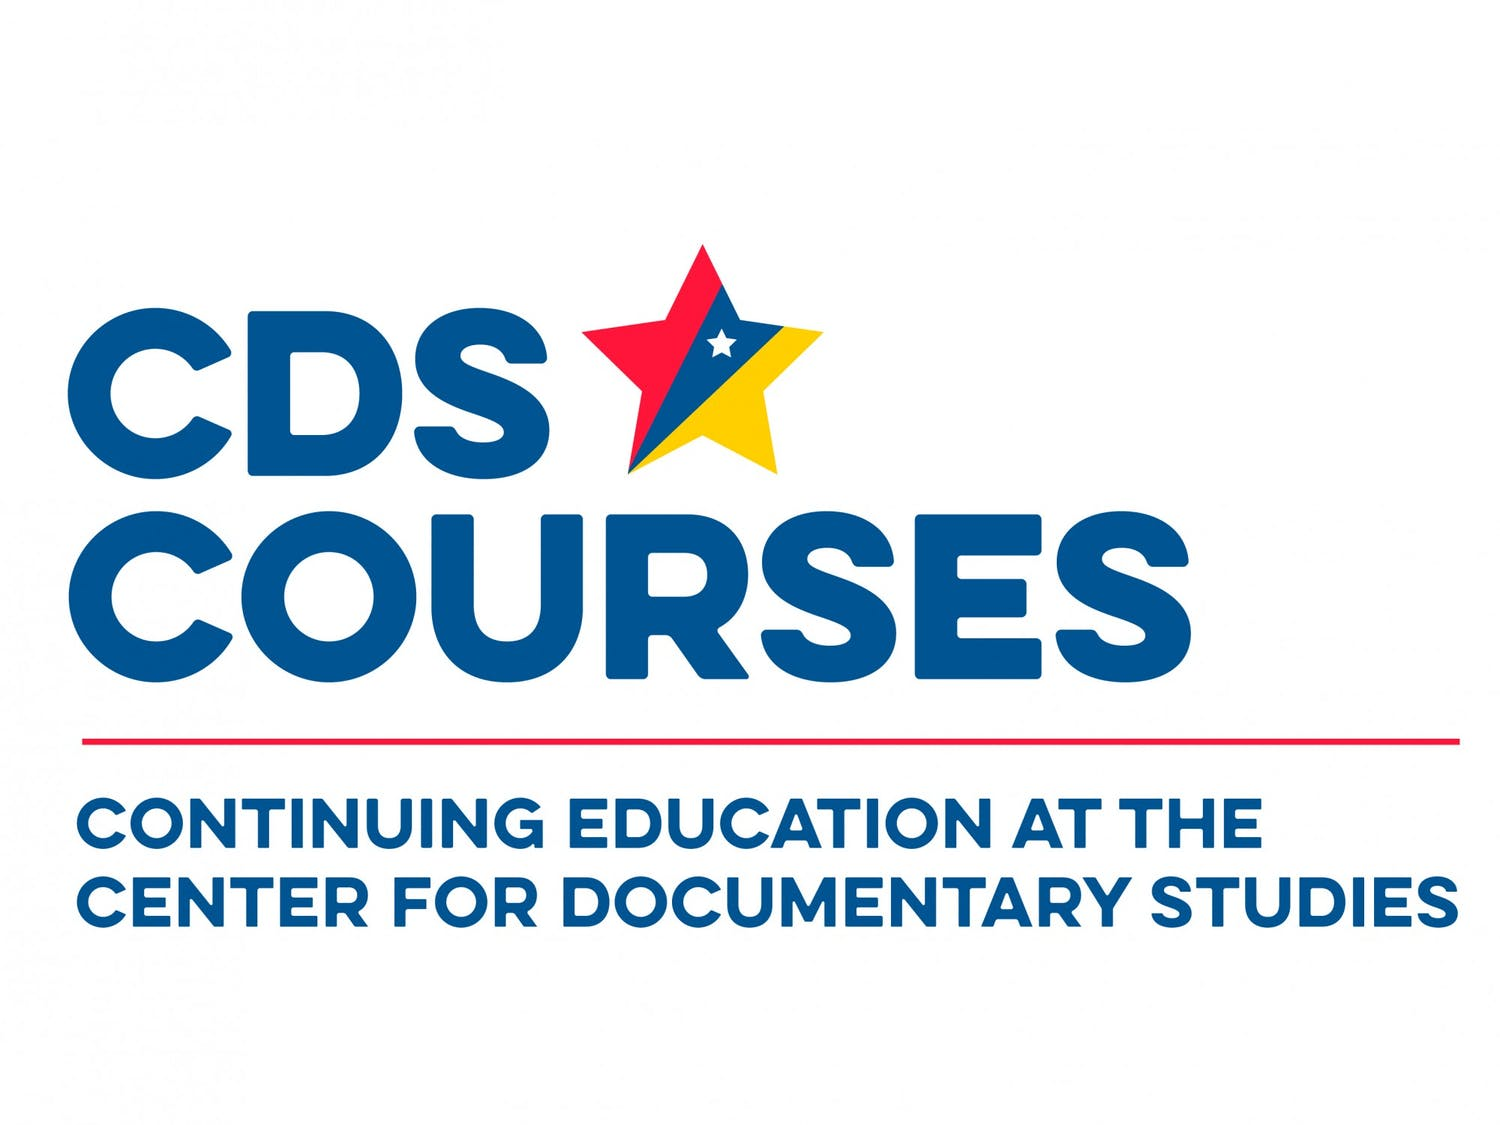 In light of recent discourse and global events, the Center for Documentary Studies at Duke is actively trying to implement an anti-racist curriculum for its continuing education program.